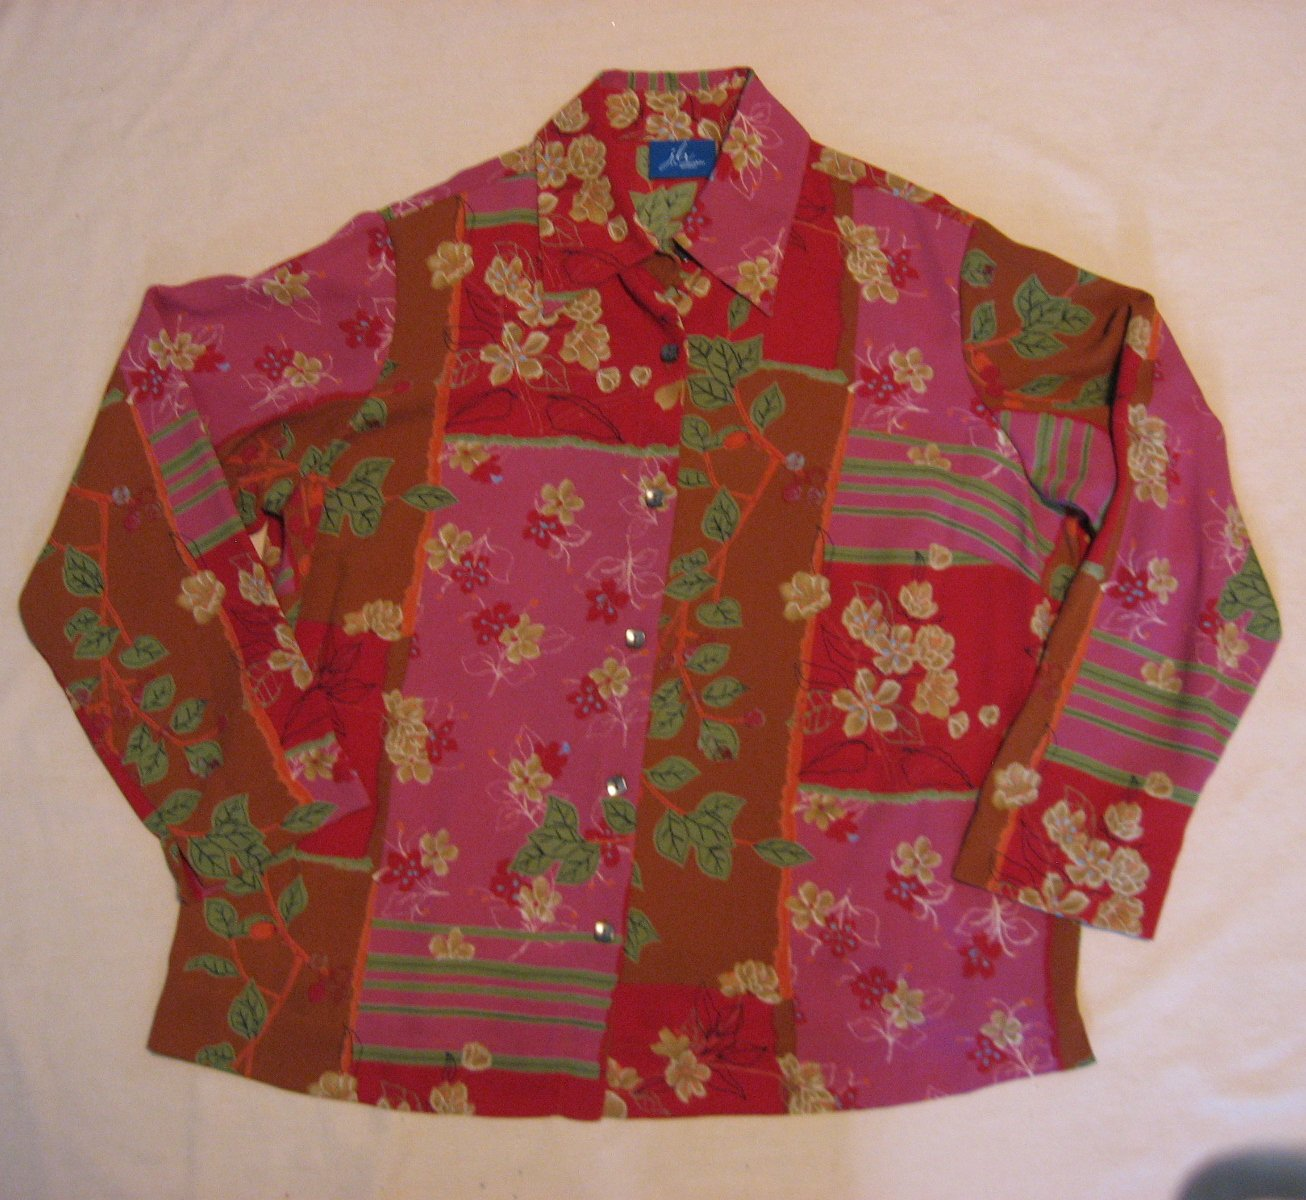 JH Collectibles Blouse 50 Chest Floral Plus Size 1 Pink Red Nice Movement Fabric